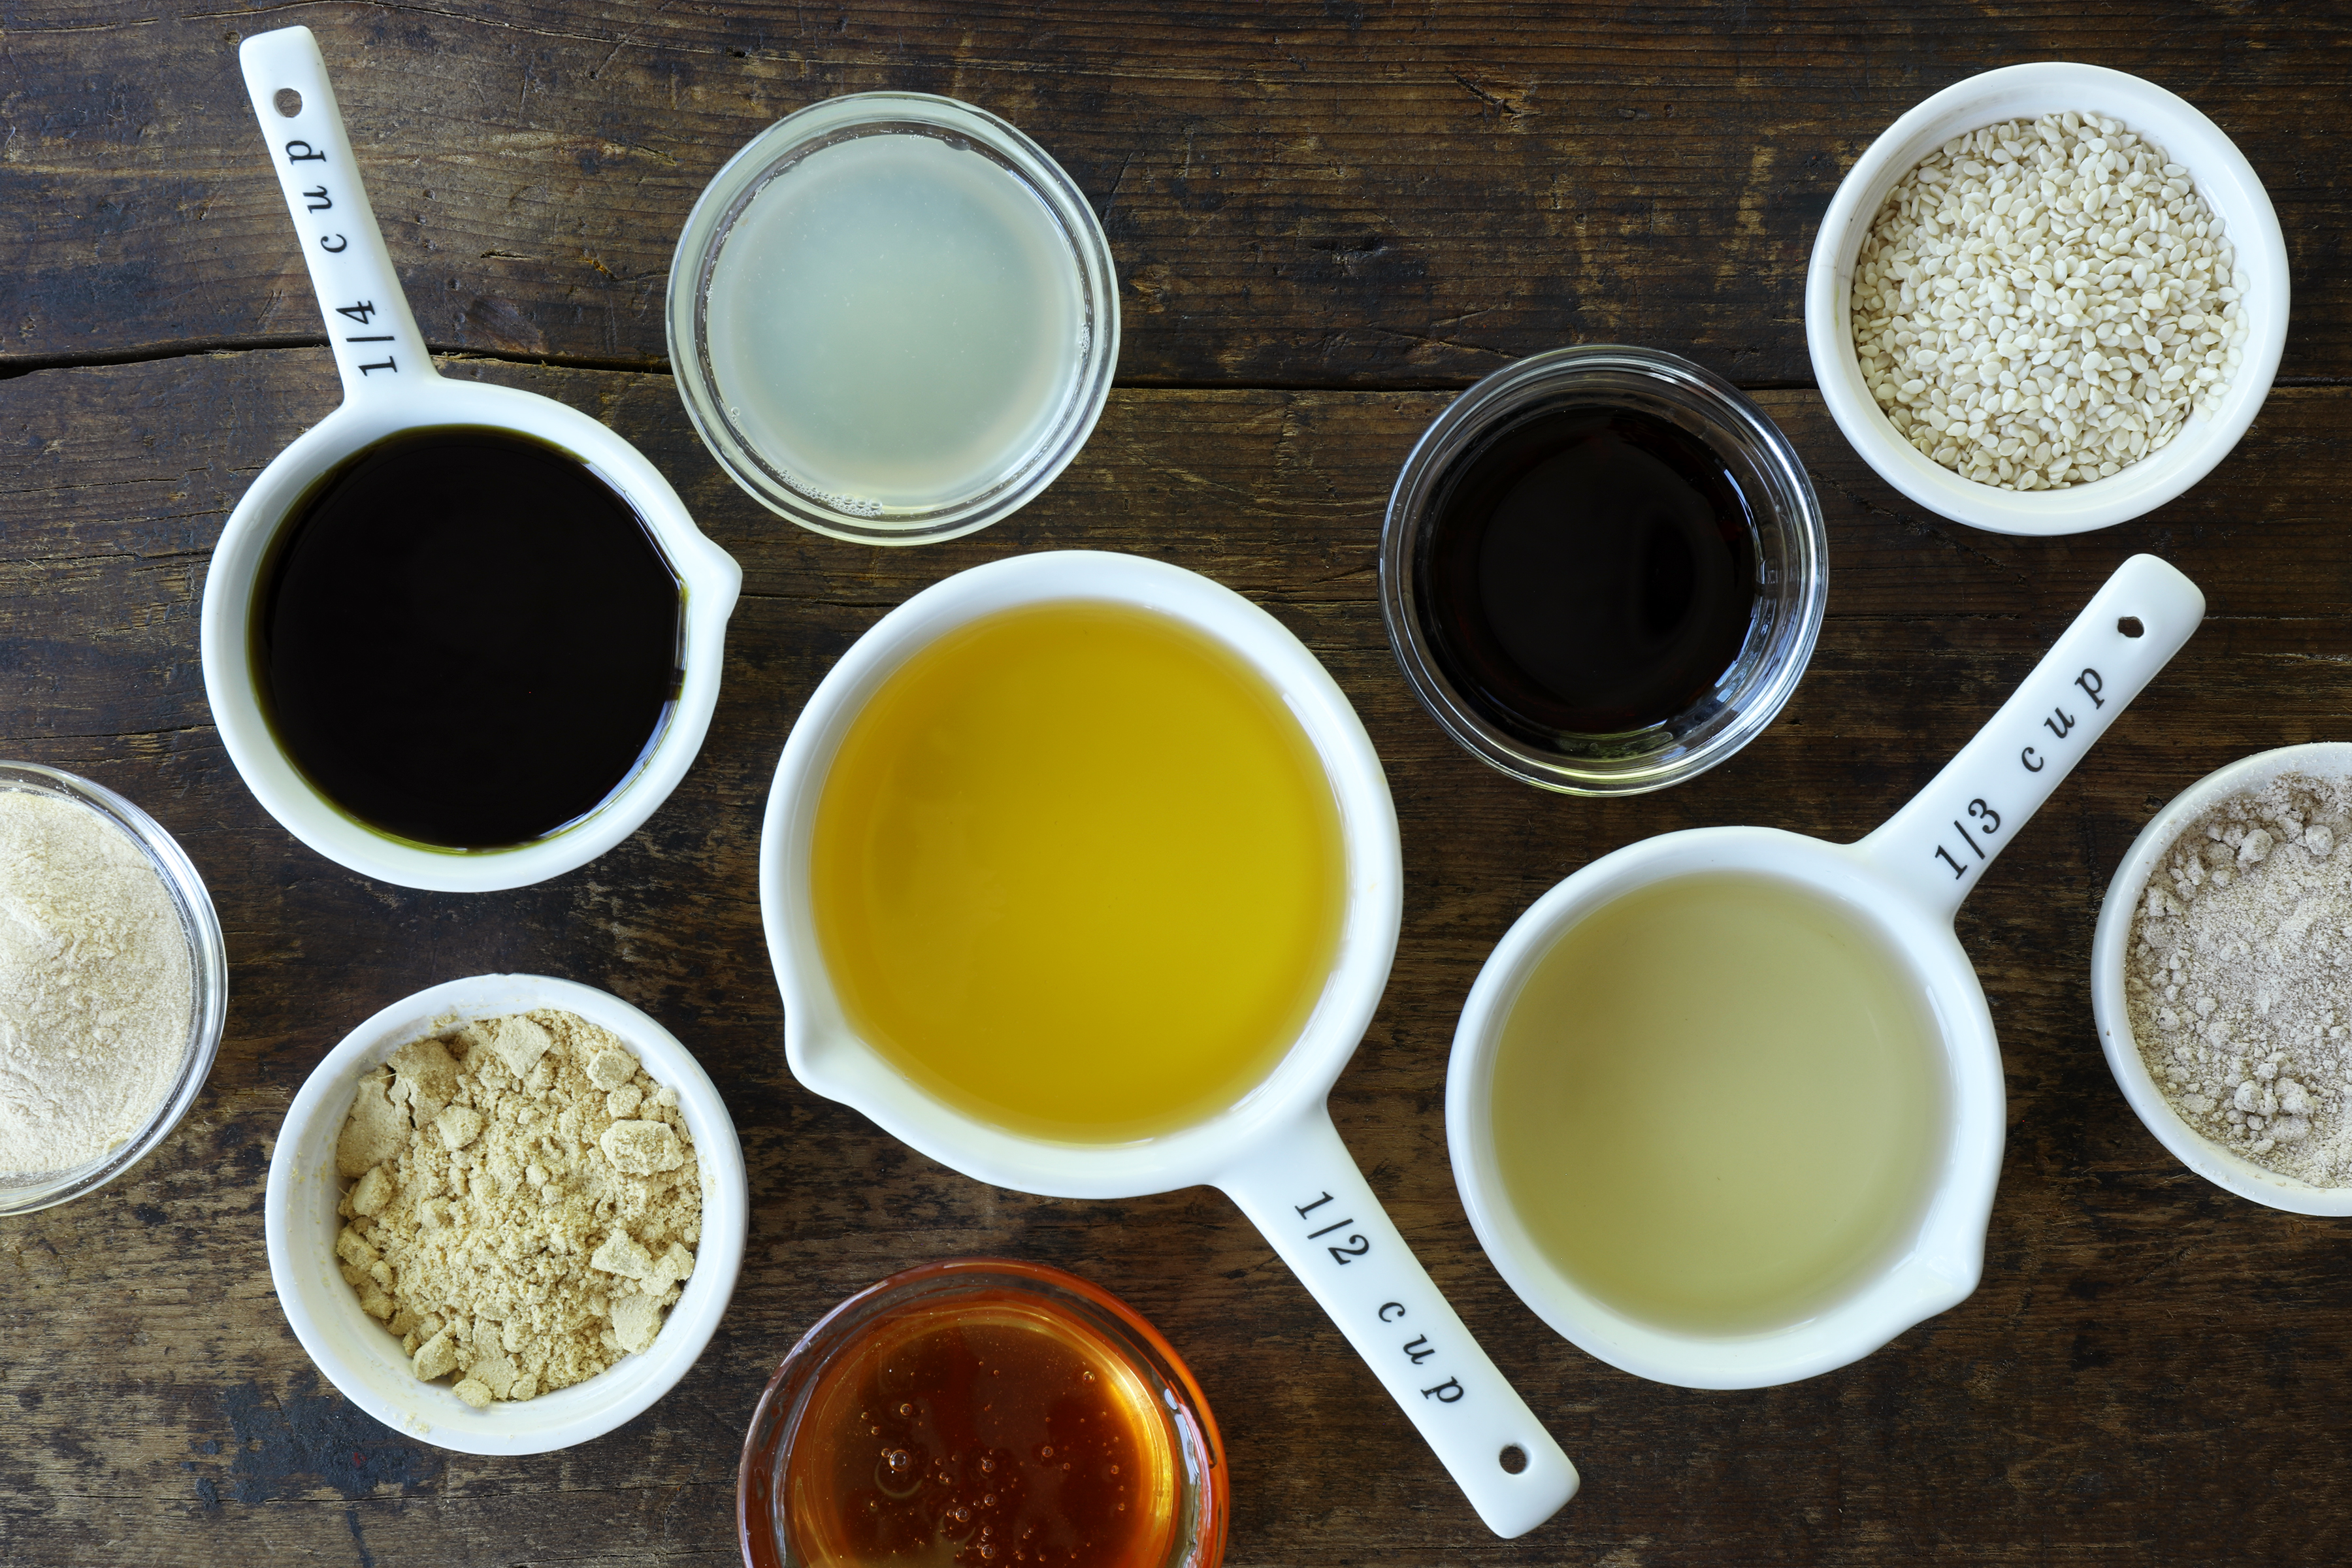 Measuring cups and bowls of oils and spices for Asian salad dressing arrayed on wooden table.